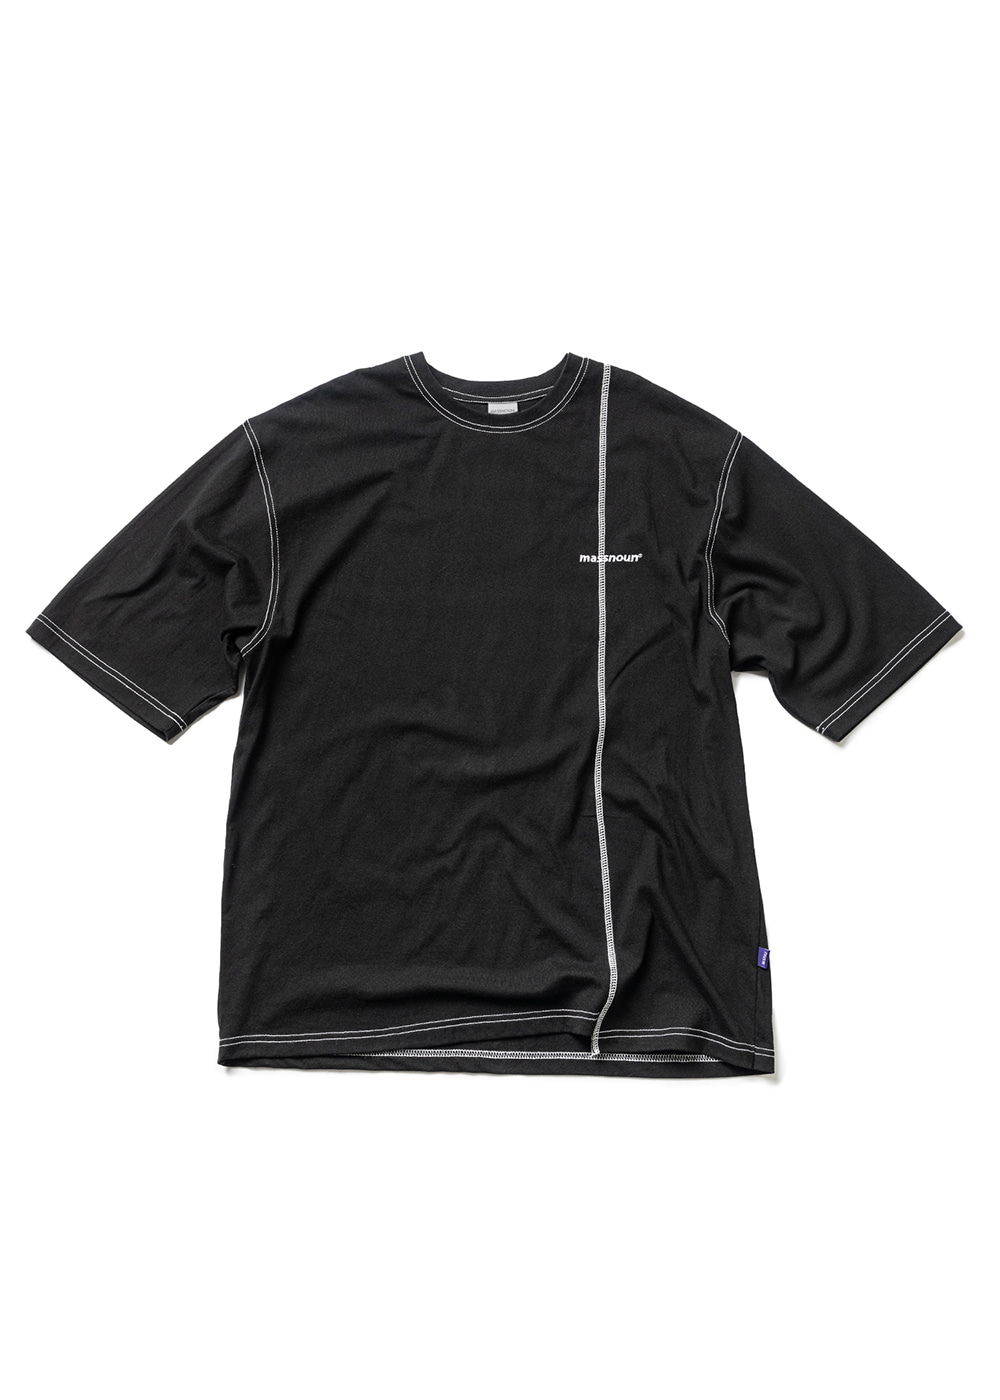 RESTRUCTURE STICH OVERSIZED T-SHIRTS MUZTS003-BK